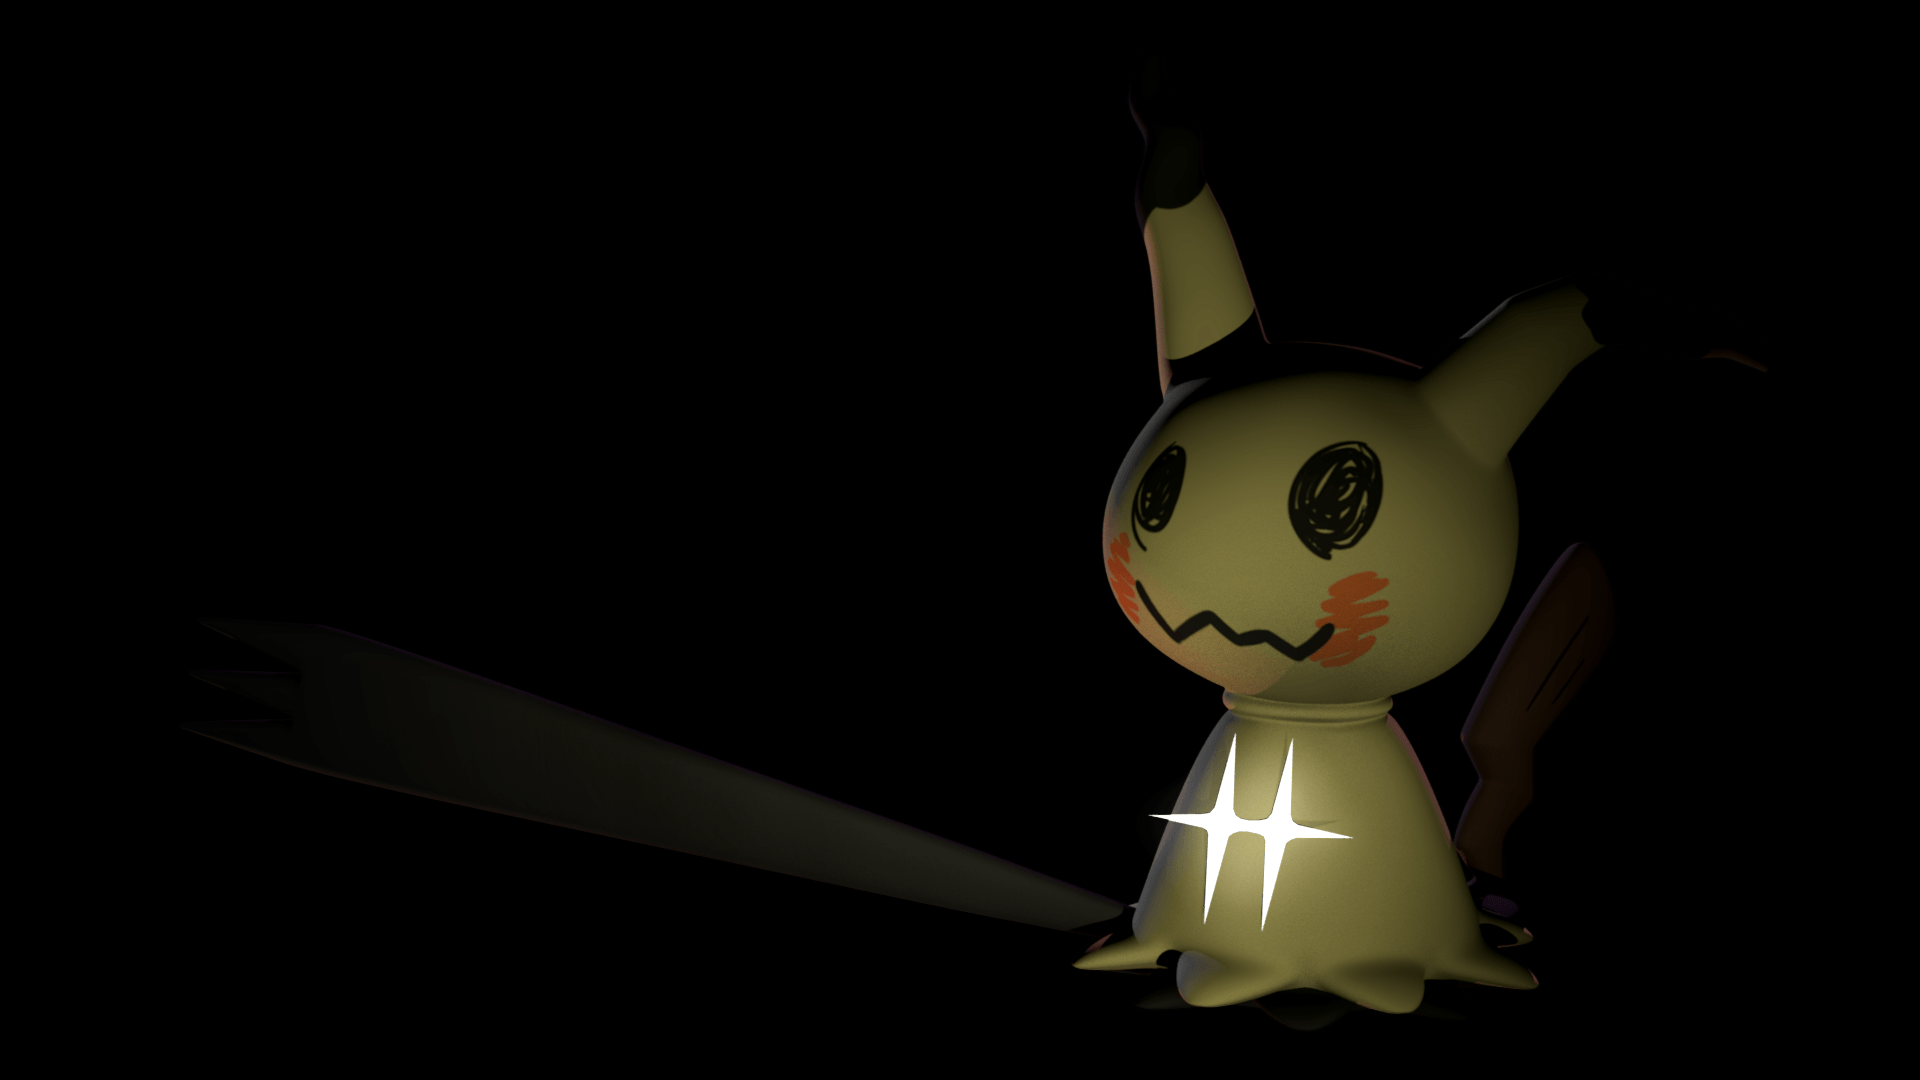 3d Mimikyu WiP by Estefanoida on DeviantArt